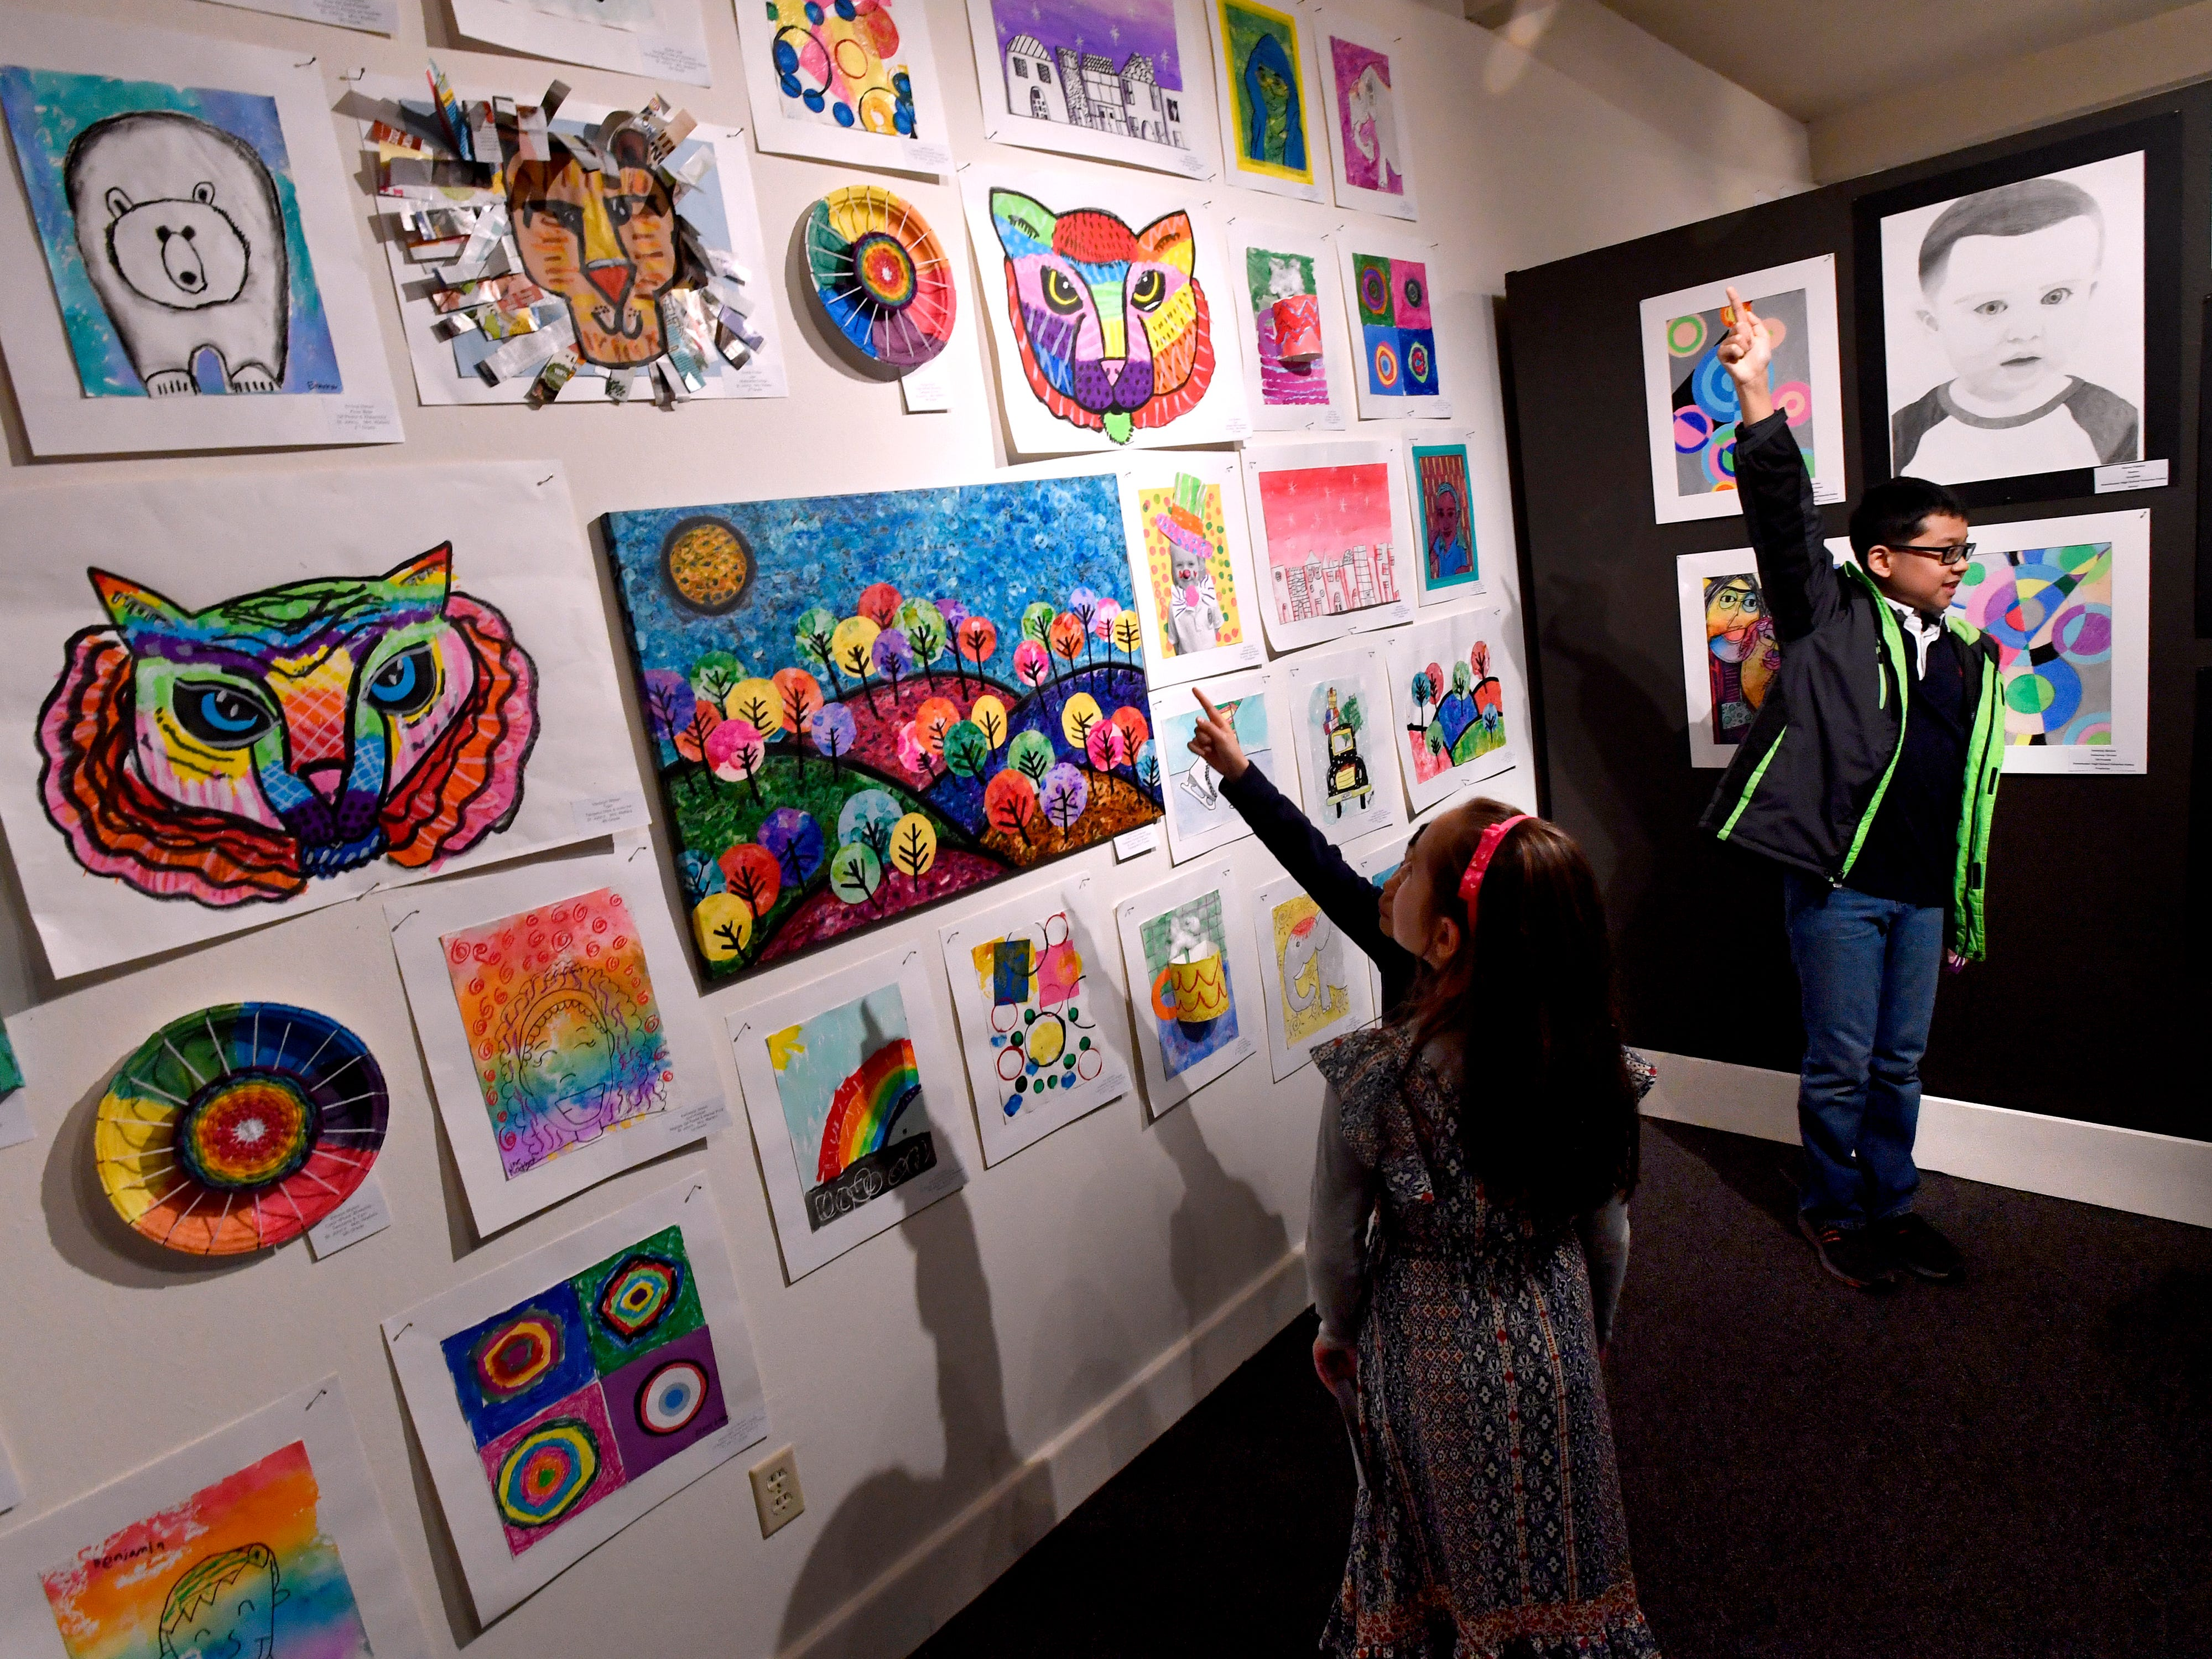 Children point to their artwork on display at the Grace Museum Feb. 21, 2019.